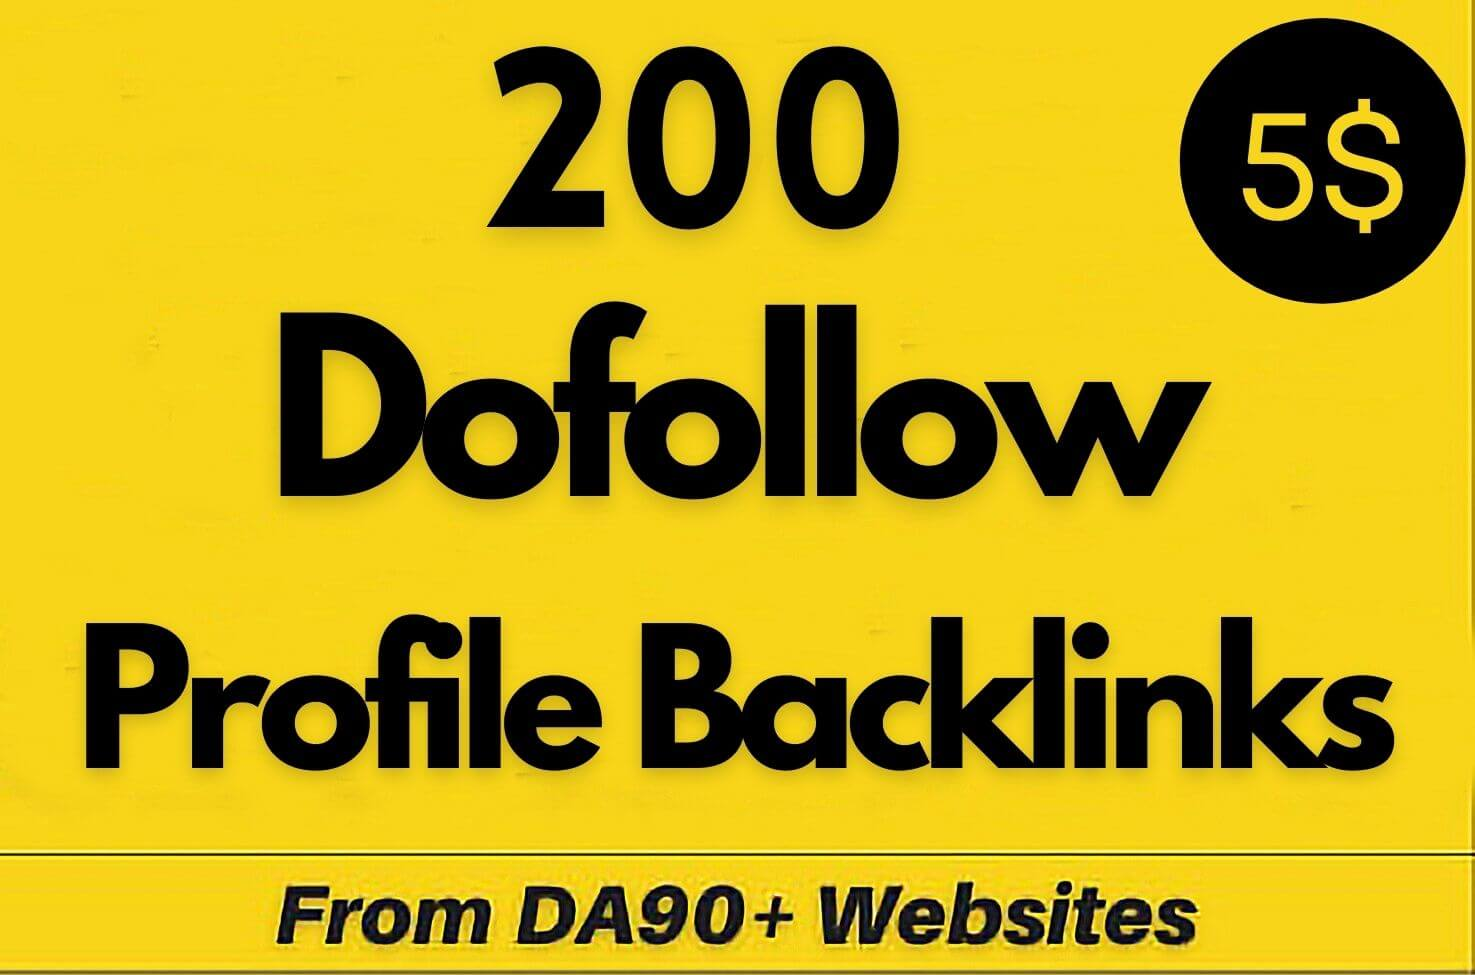 200 Unique HQ Domain Authority Manually Profile Backlinks Create Do-Follow Permanent Link building